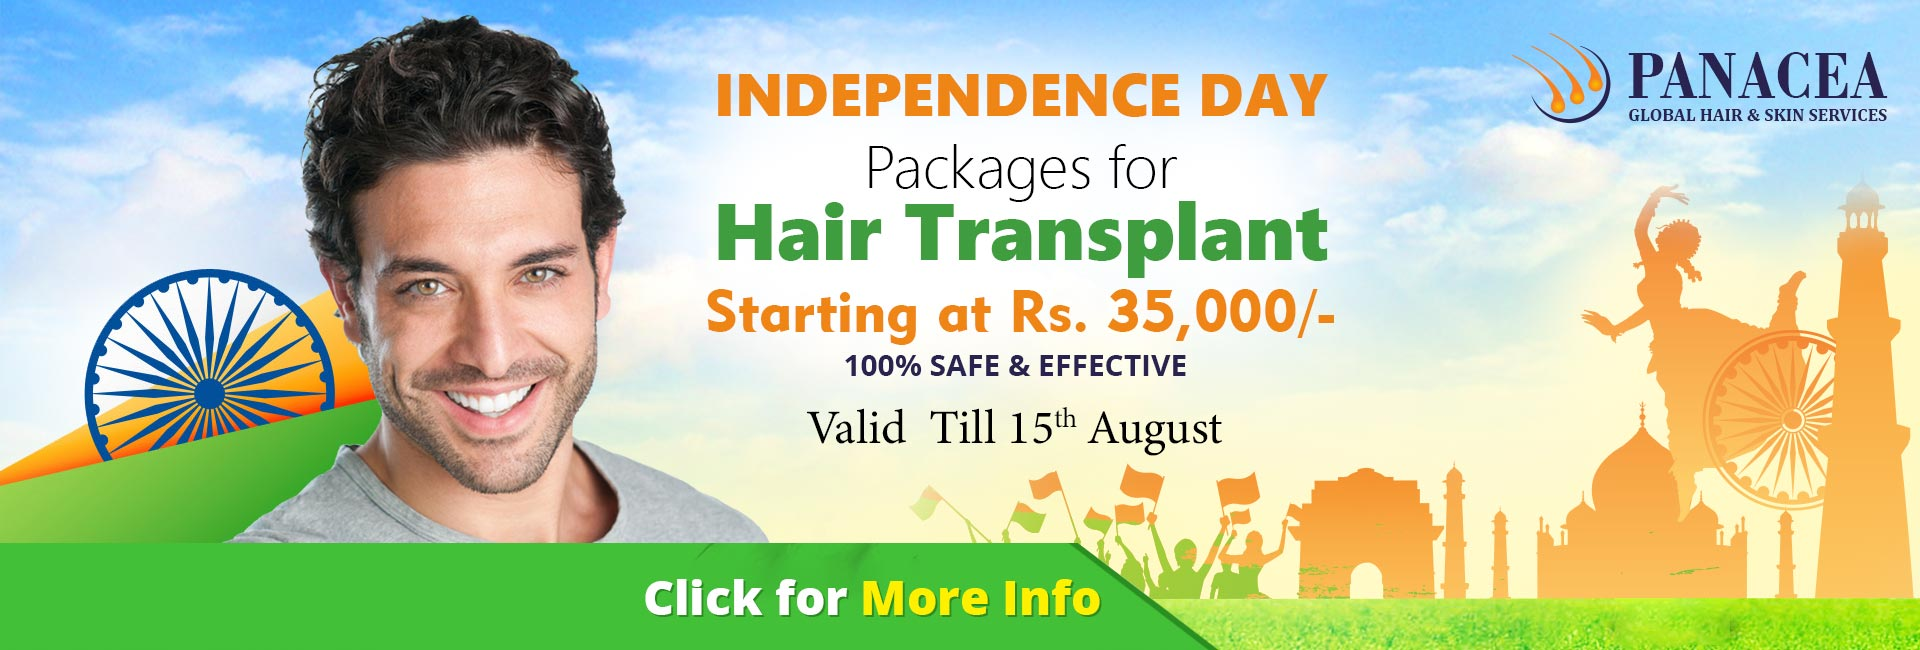 Independence Day Offer 2019